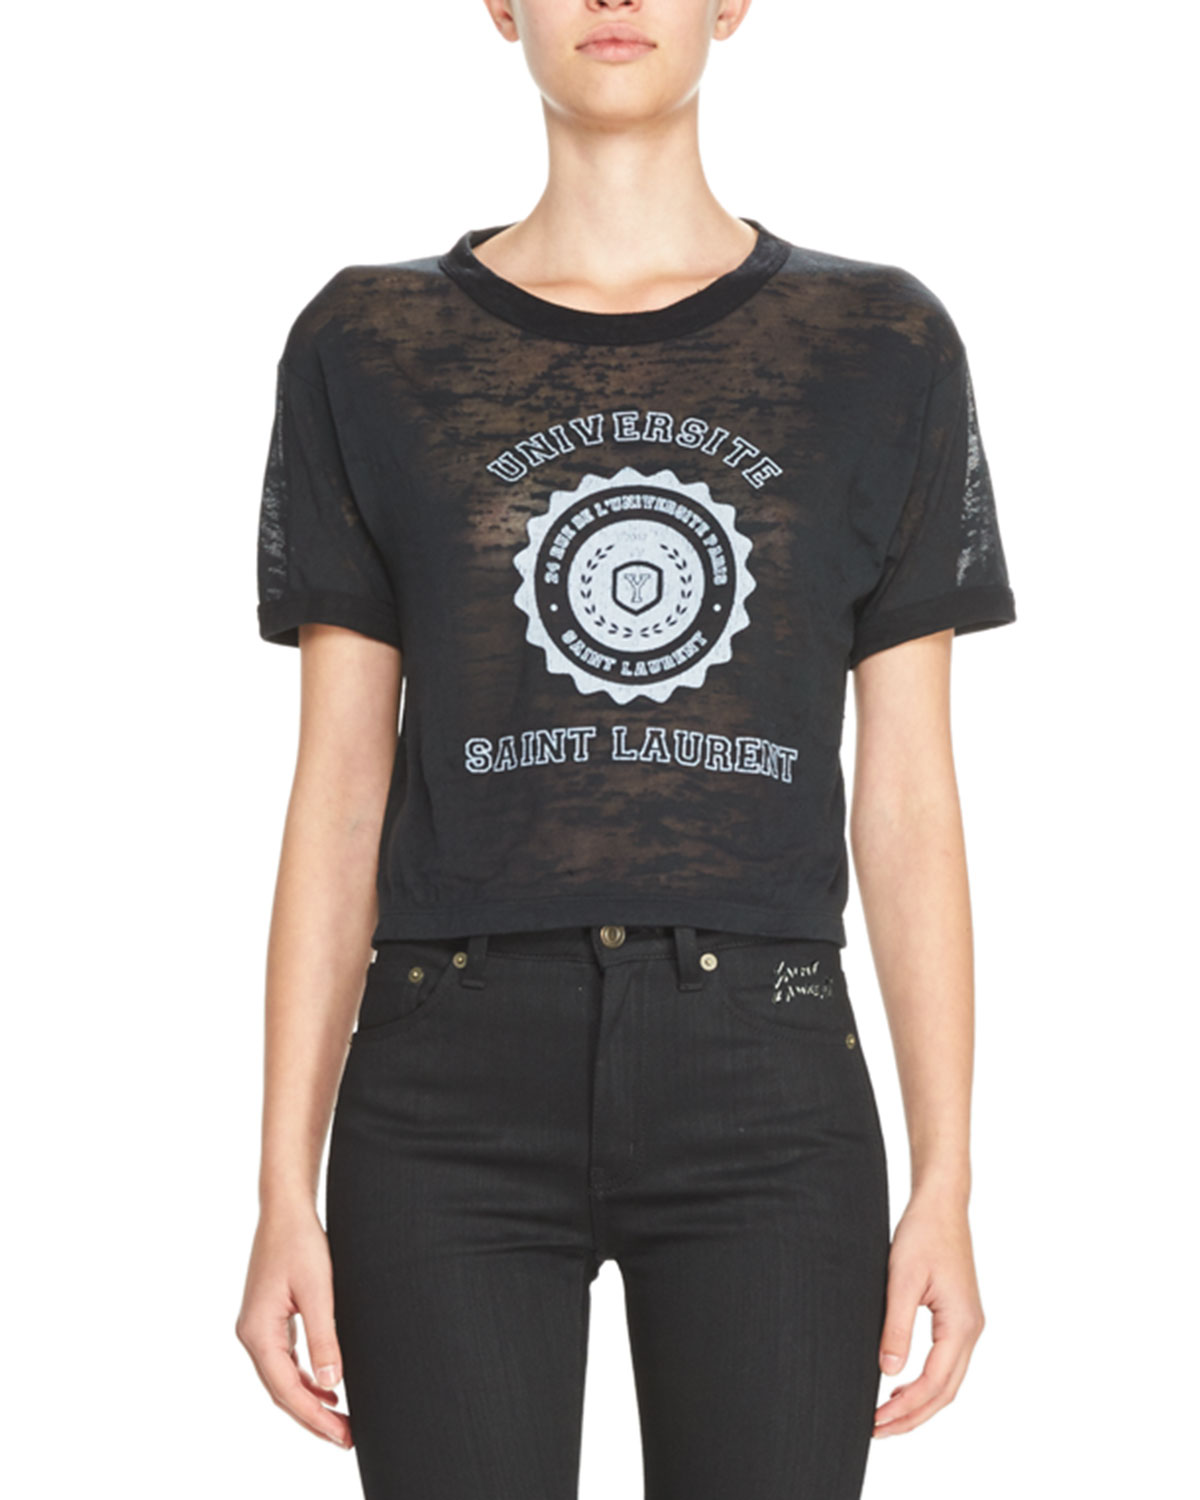 Université Saint Laurent Cropped Burnout T-Shirt, Black/White